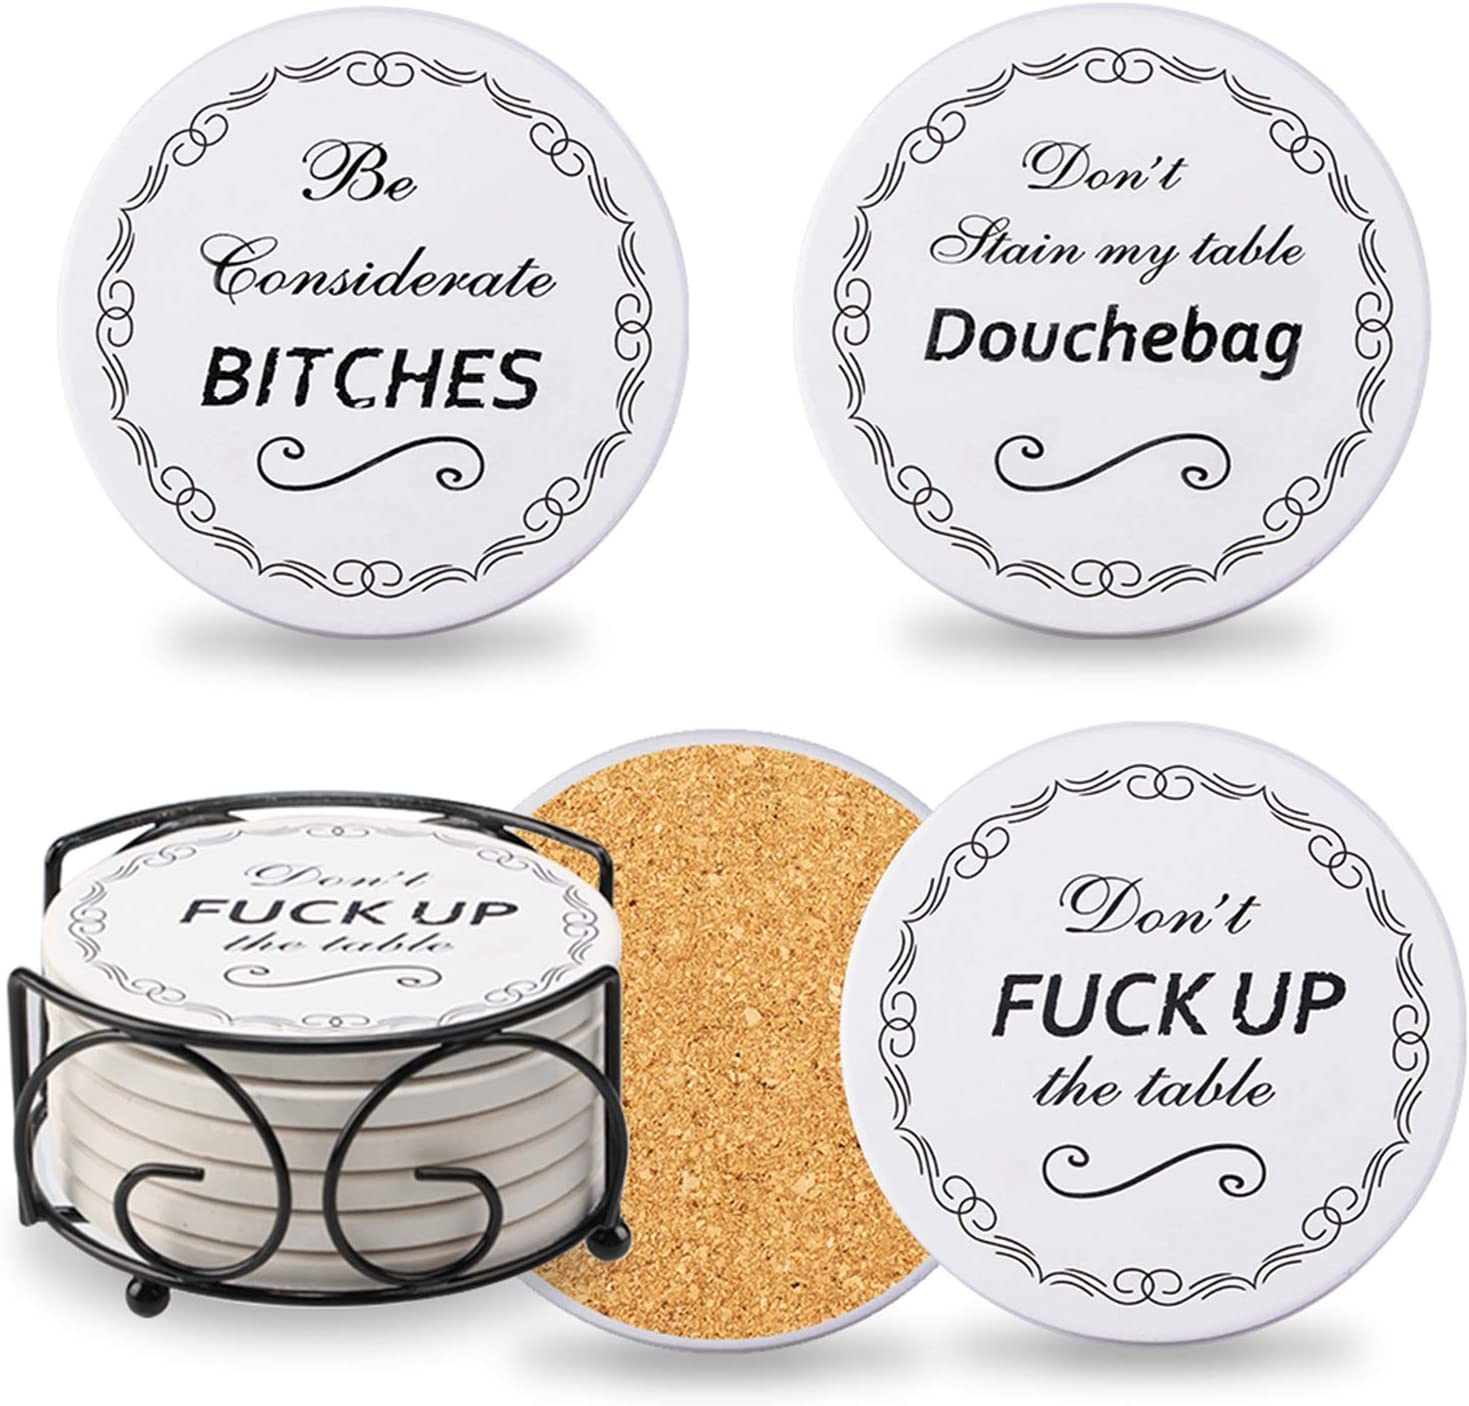 Chrider Funny Coasters for Drinks Absorbent with Holder, 6-Piece Set, Present for Men, Women, Friends, Housewarming, Living Room Decorations, Birthday, Ideas